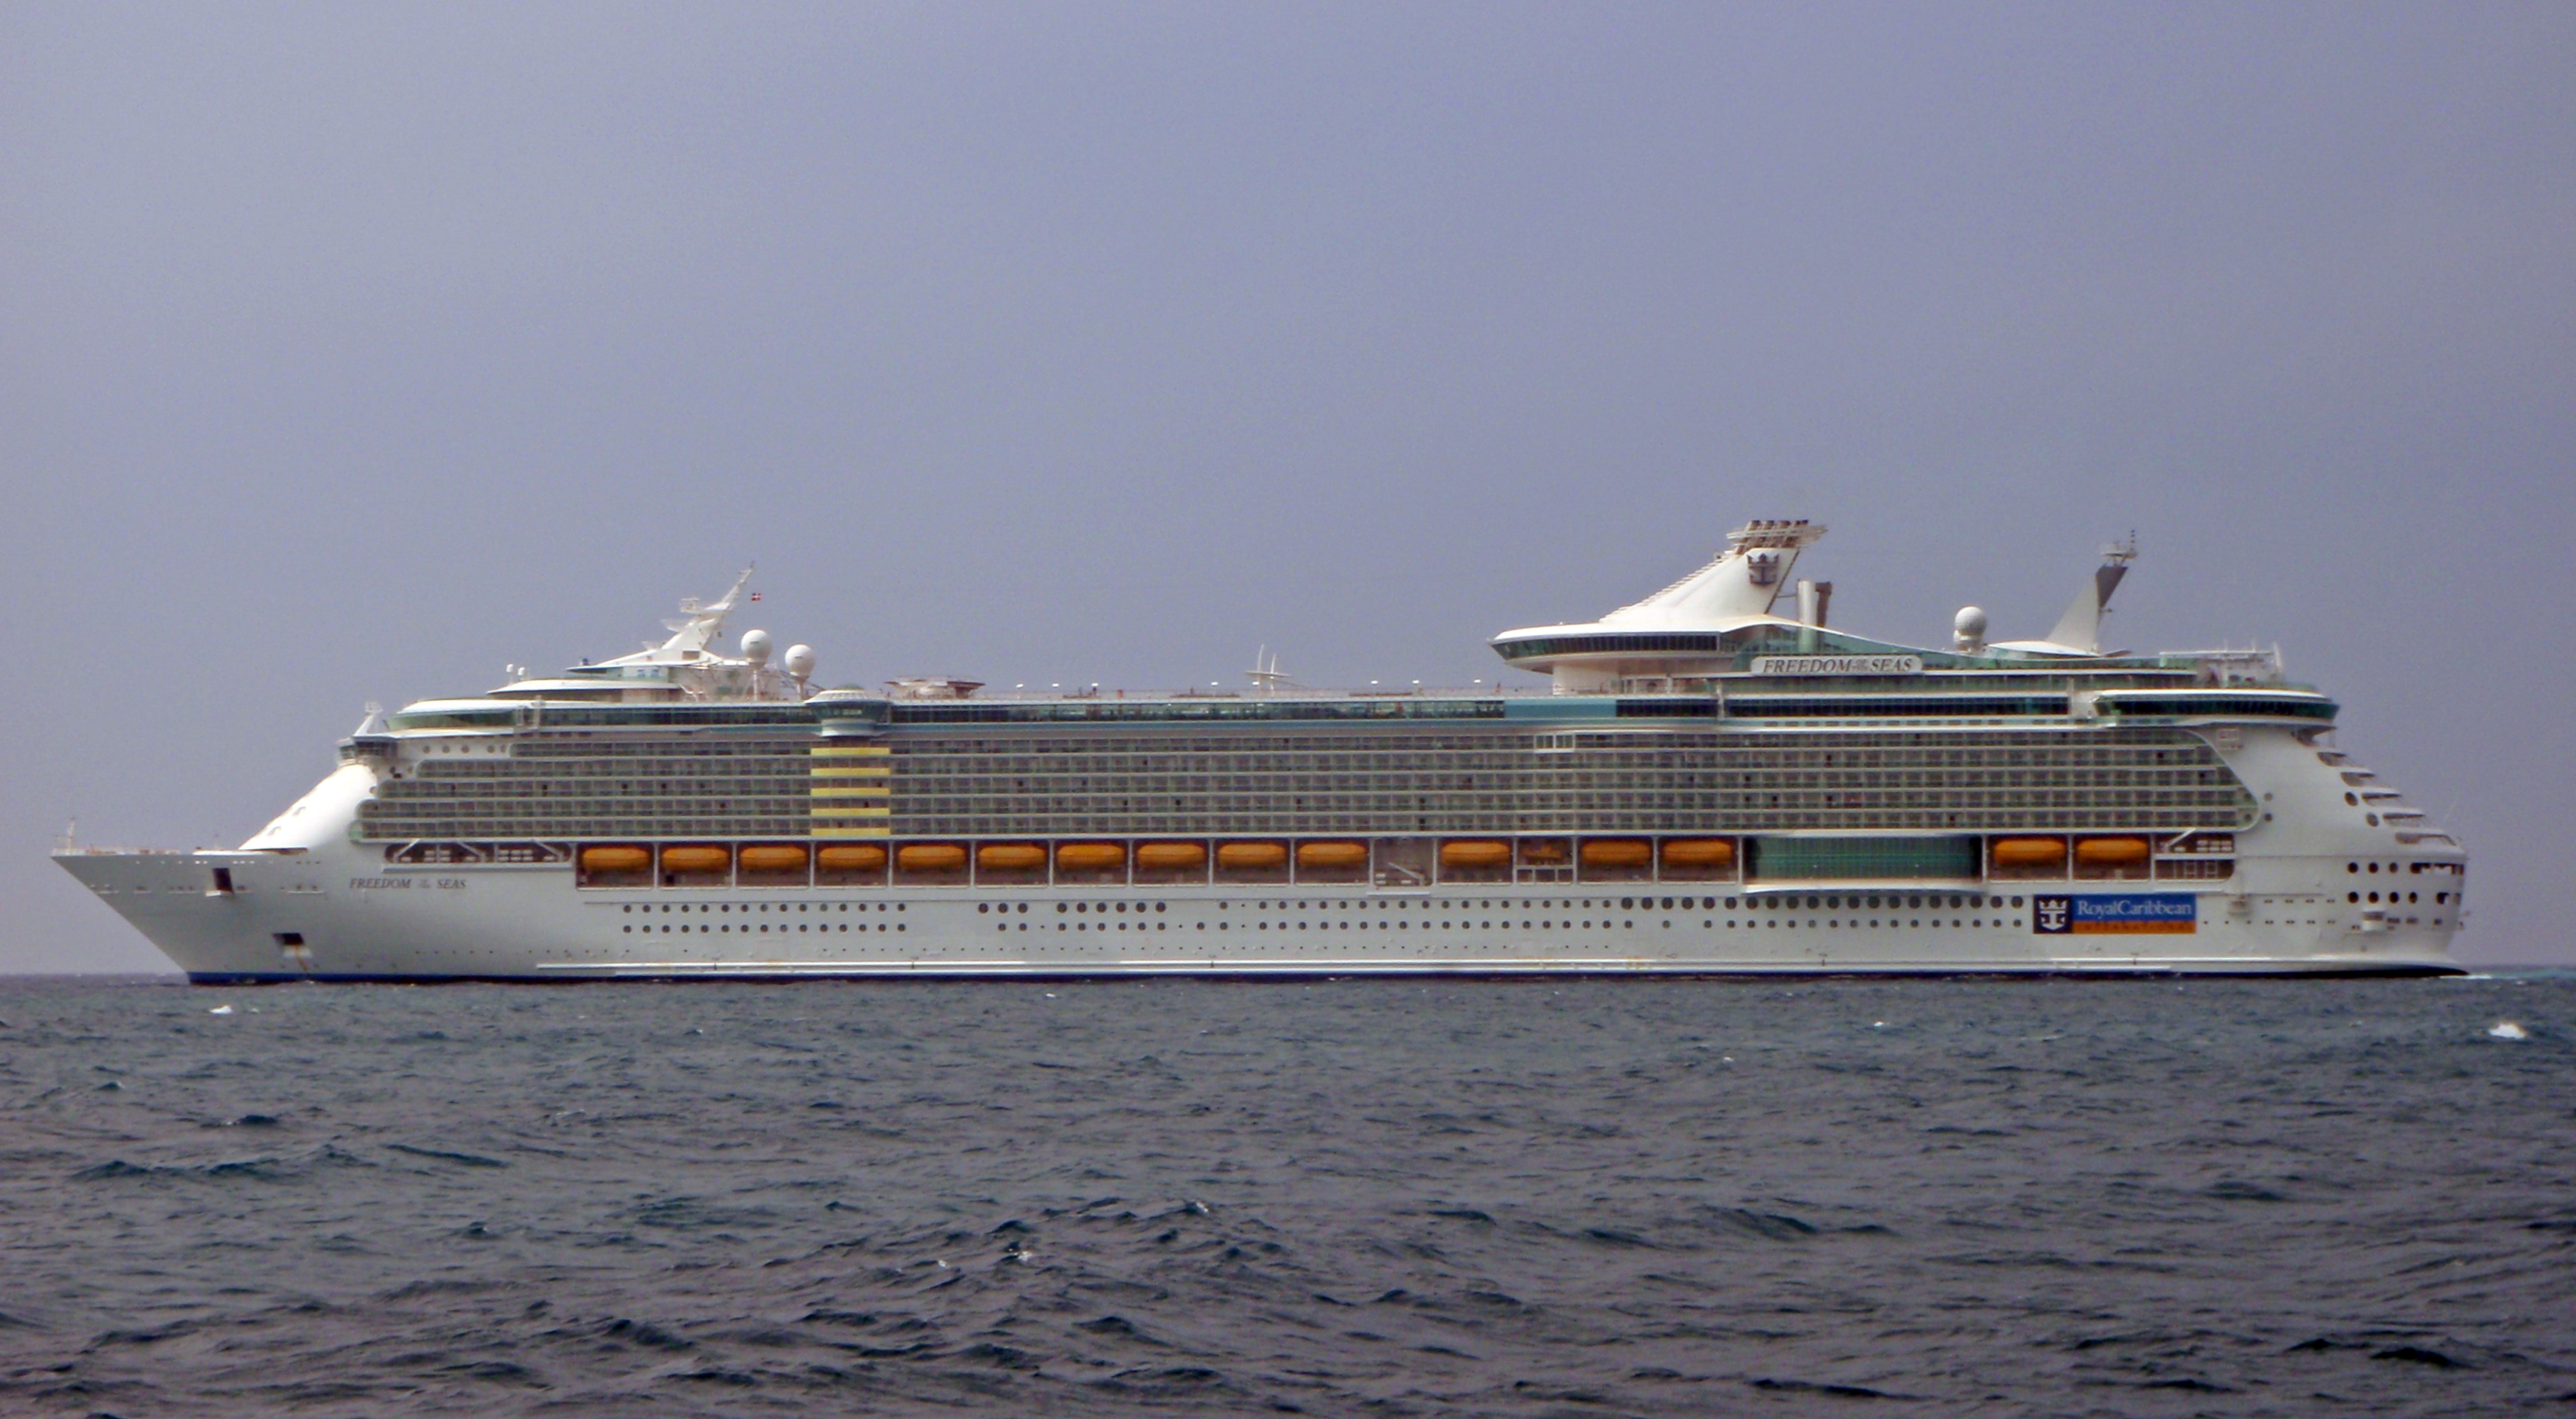 FileFreedom Of The Seas Ship Jpg Wikimedia Commons - Freedom of the seas